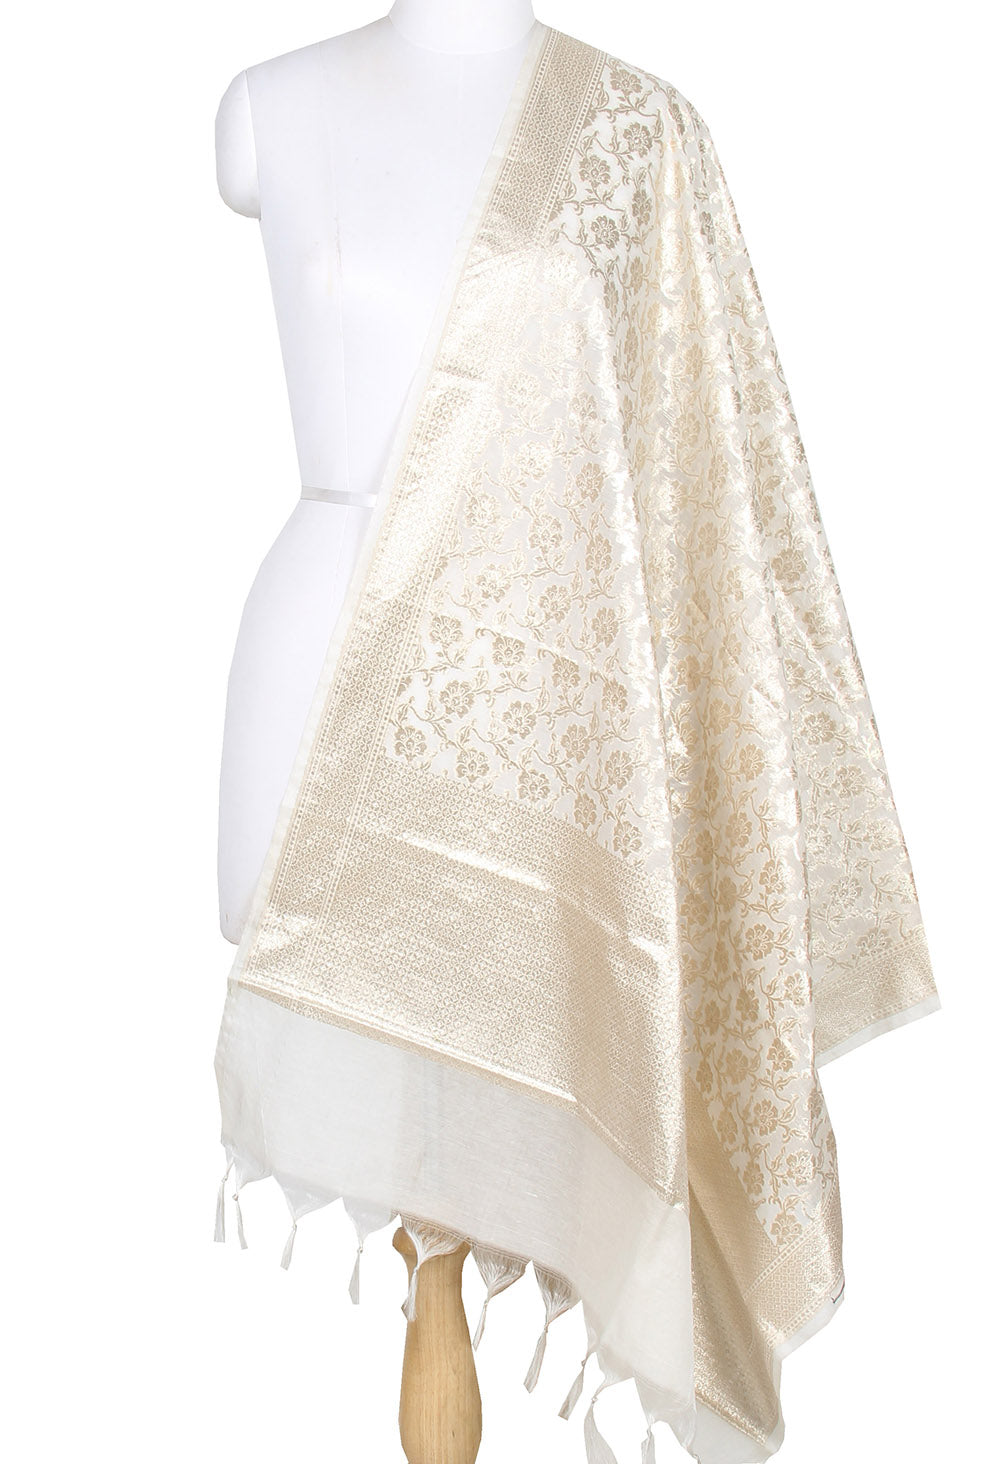 Off white Cotton Banarasi dupatta with delicate flower jaal (1) main